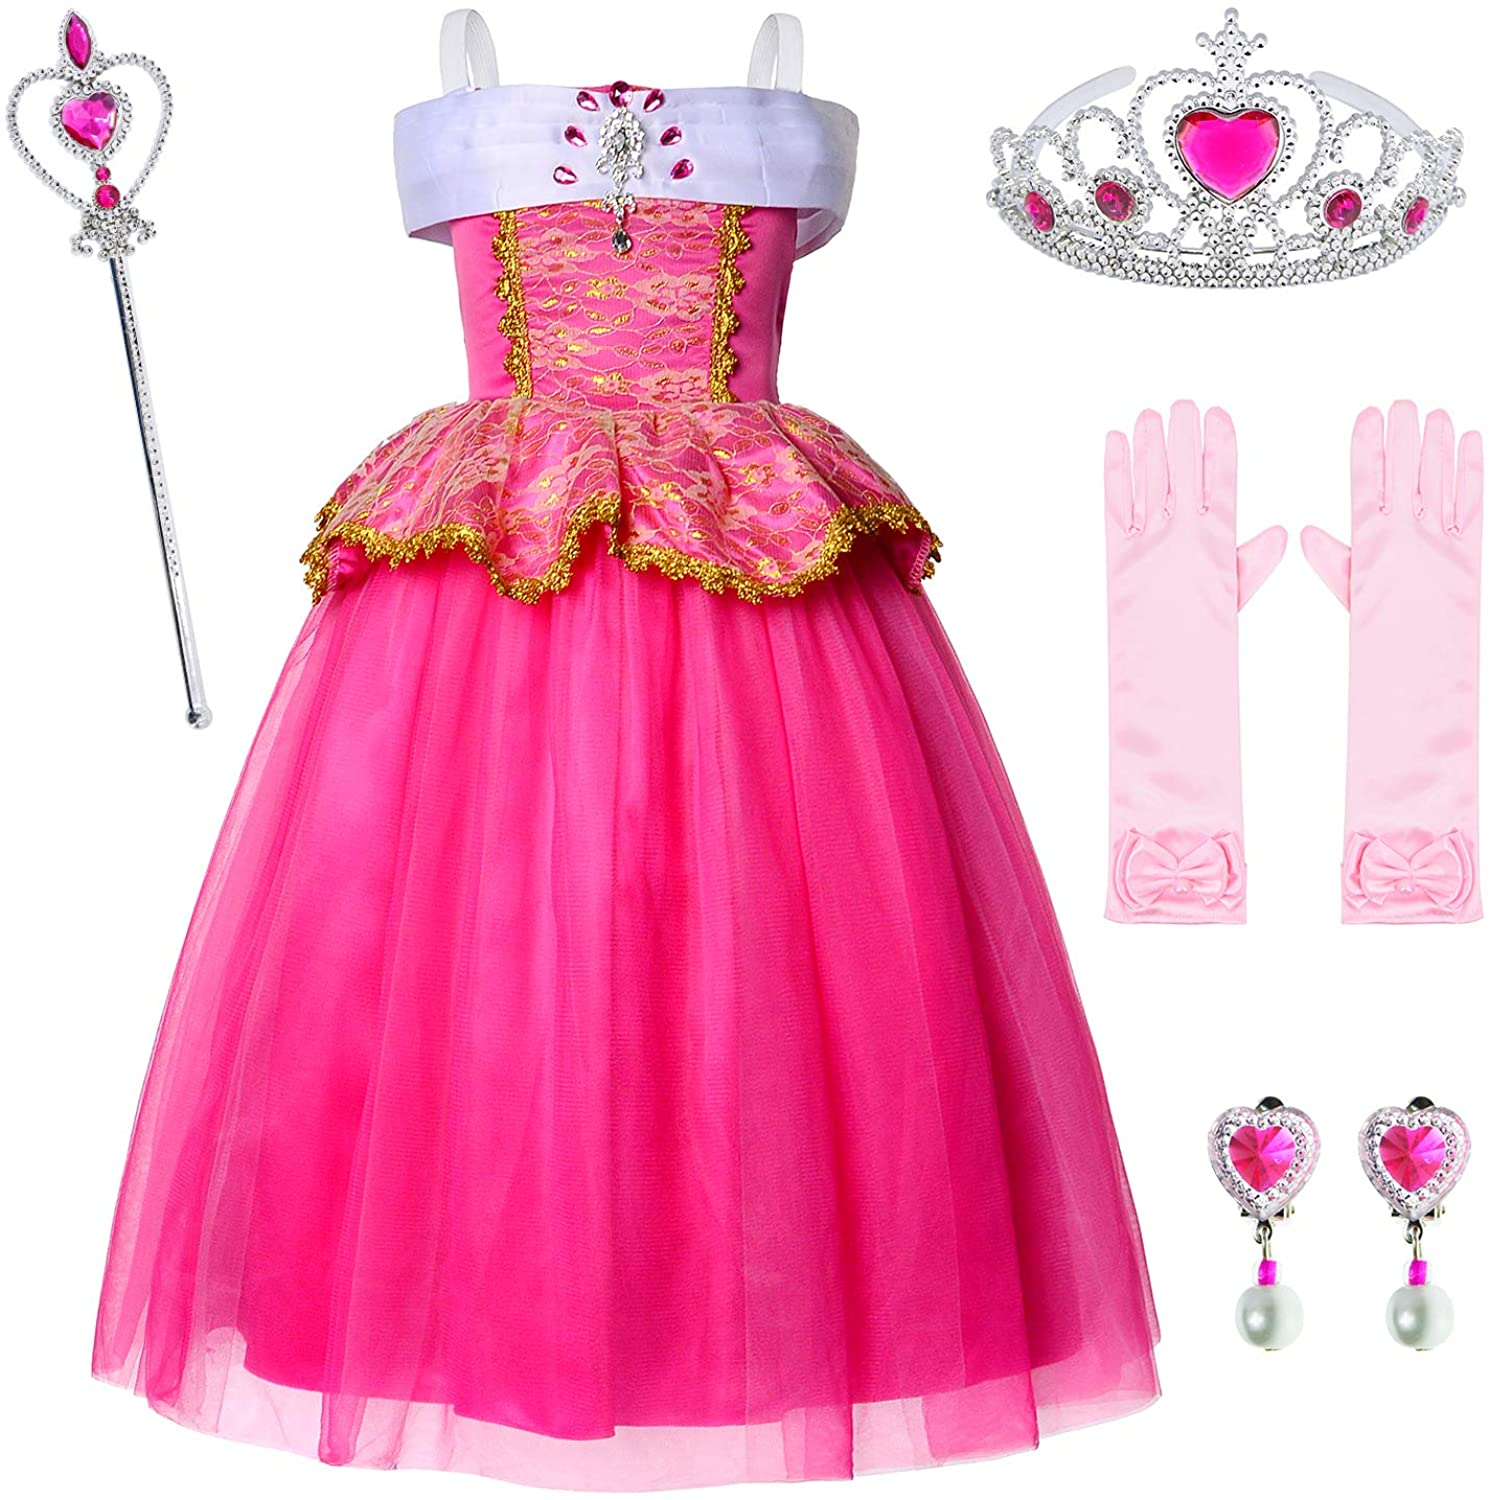 Joy Join Deluxe Princess Pink Dress Costume for Girls Birthday Party with Gloves Earrings Crown and Wand